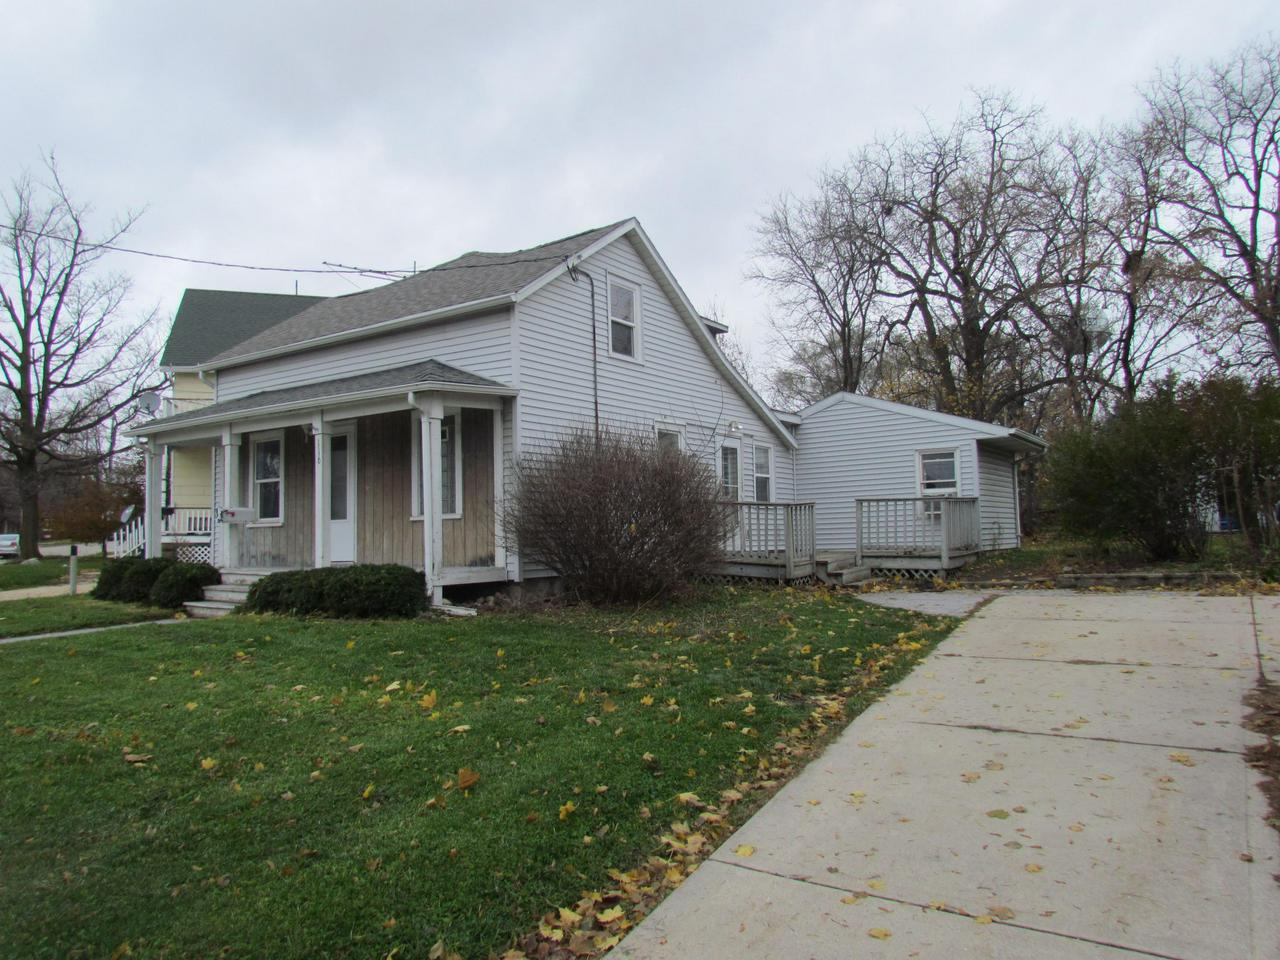 The possibilities are endless with this 3 bedroom 1 bath home. Bring your ideas and make this one shine again. Main level offers Sunlit LR w/newer carpet. Bright eat in KIT w/snack bar, and 1 bedroom. Upstairs you will find a den/office area, and 2 bedrooms. Side deck, cute front porch, private yard w/shed.All appliances are included. 1 year home warranty included through HMS (a $489 value)